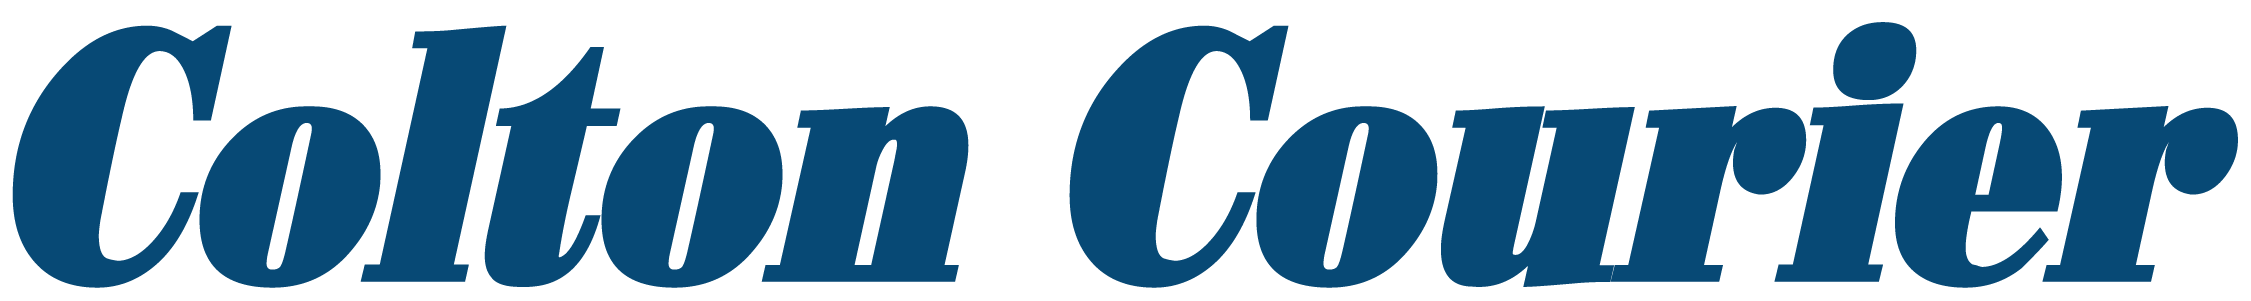 Colton courier inland empire. Newspaper clipart civic education